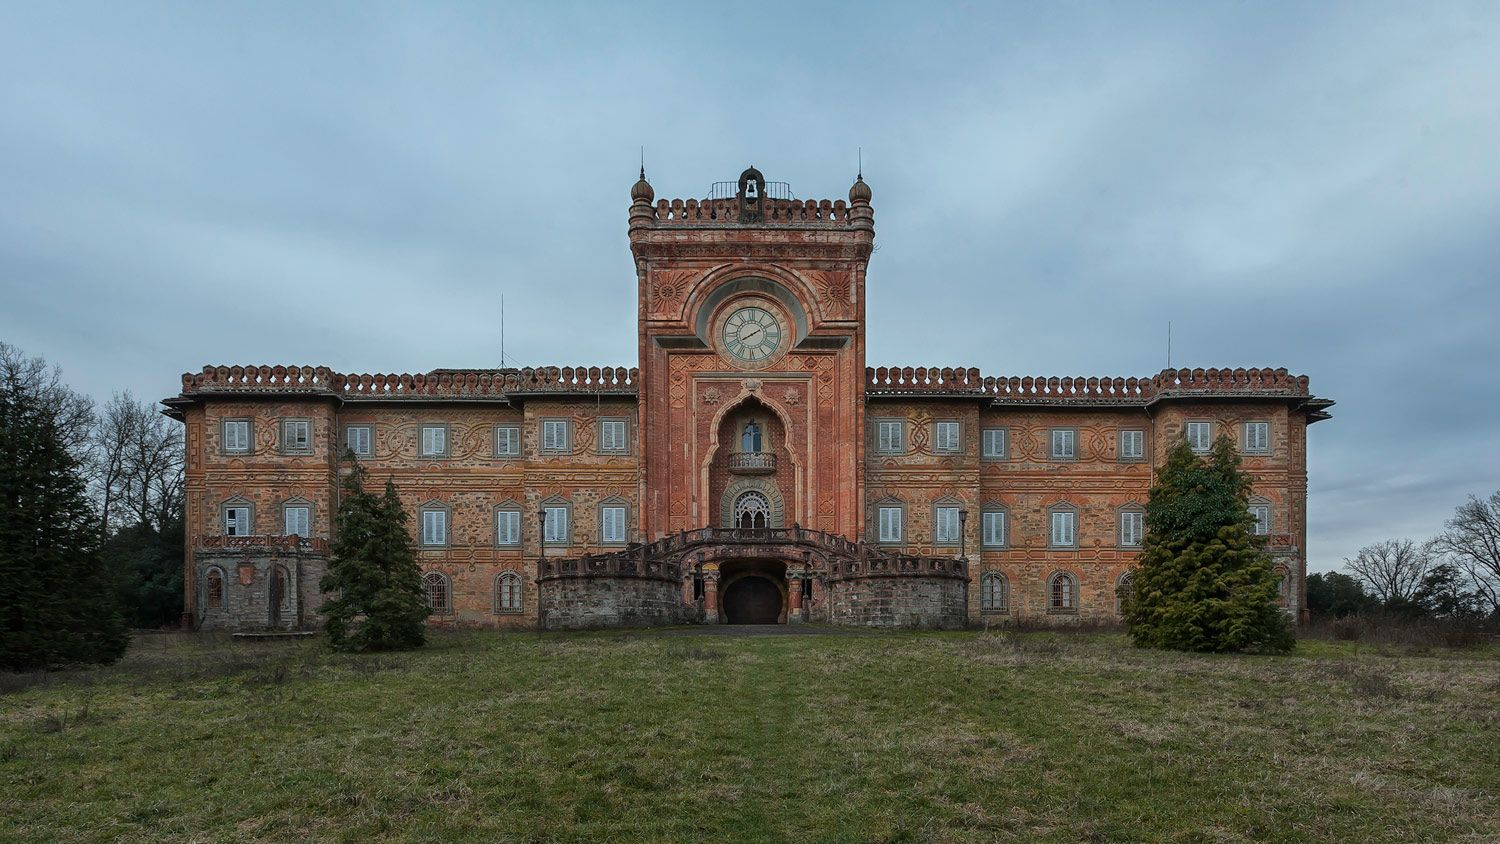 Behind This Aged Façade Is The World's Most Beautiful Abandoned Castle